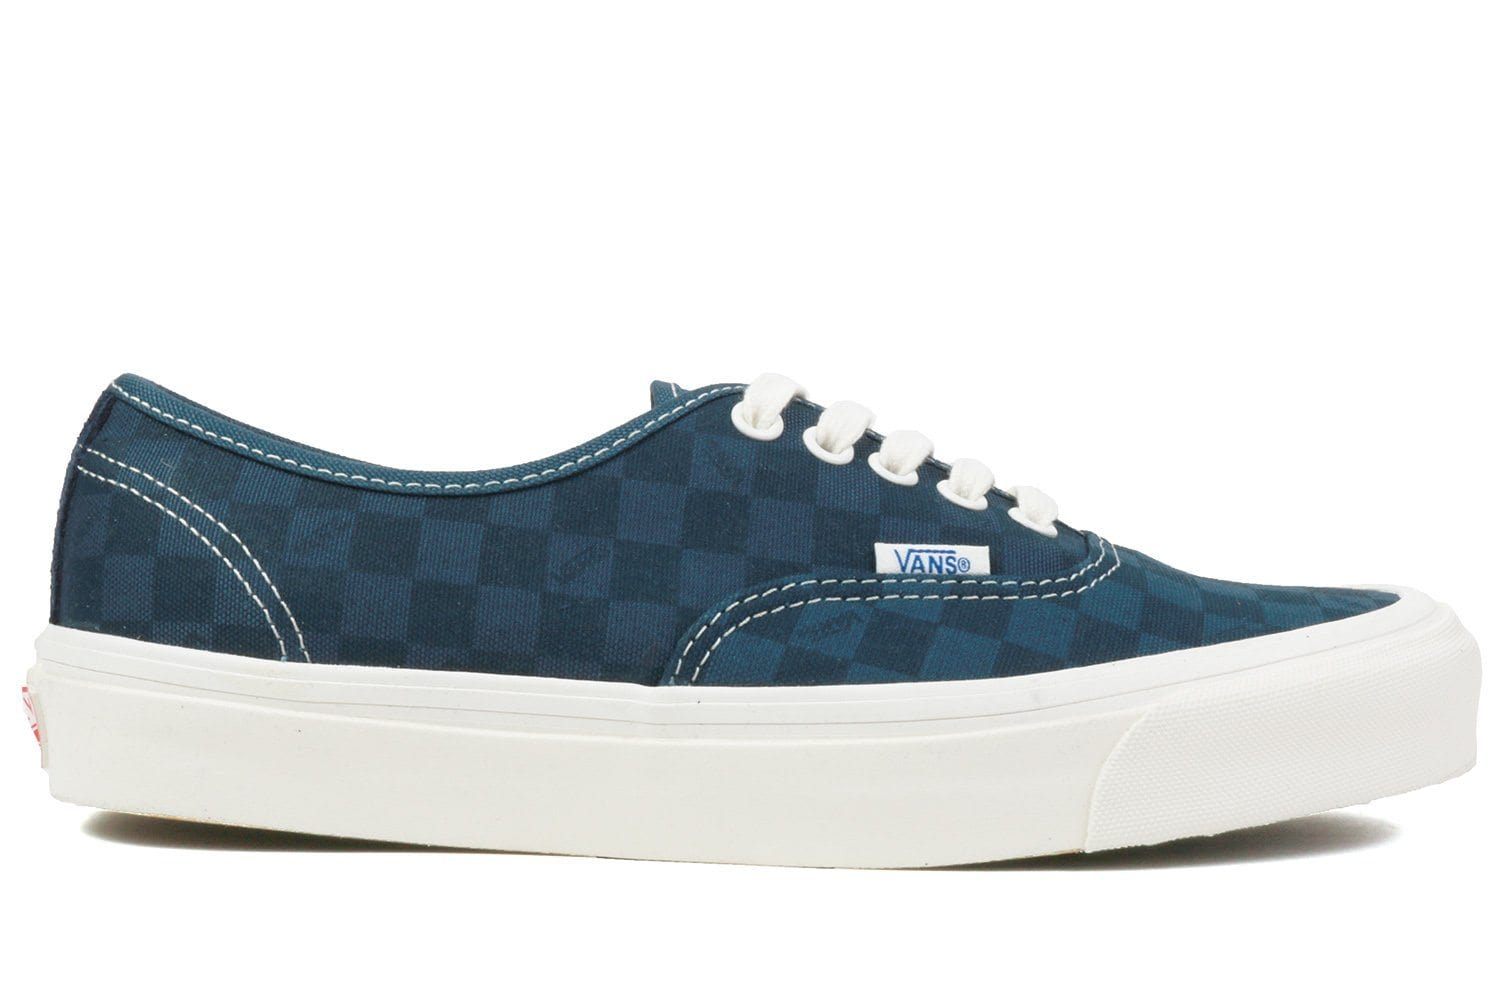 OG AUTHENTIC LX MENS FOOTWEAR VANS